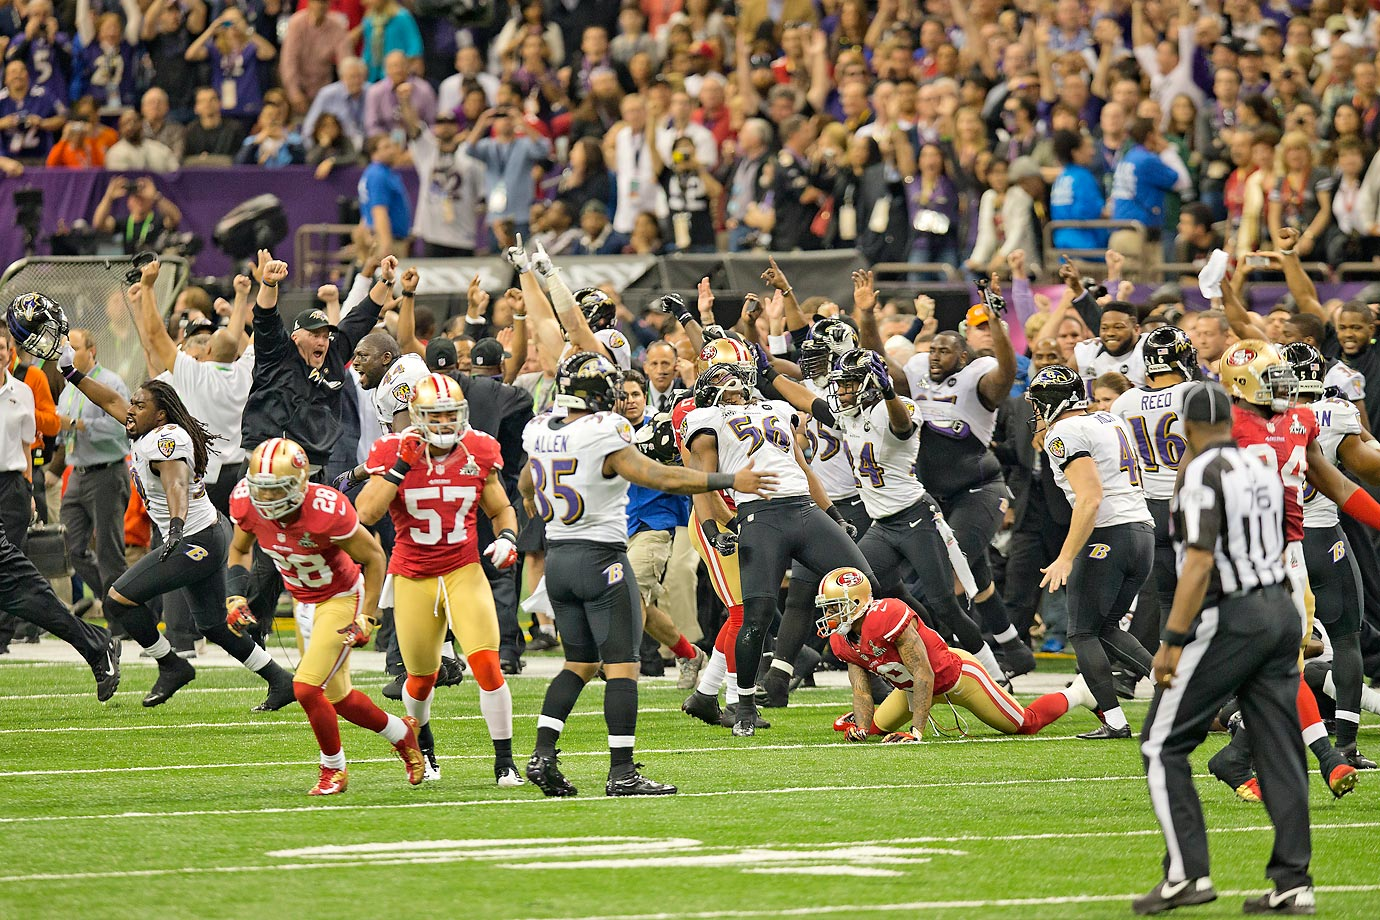 Baltimore Ravens pour onto the field to celebrate their victory -- San Francisco's first ever in a Super Bowl.